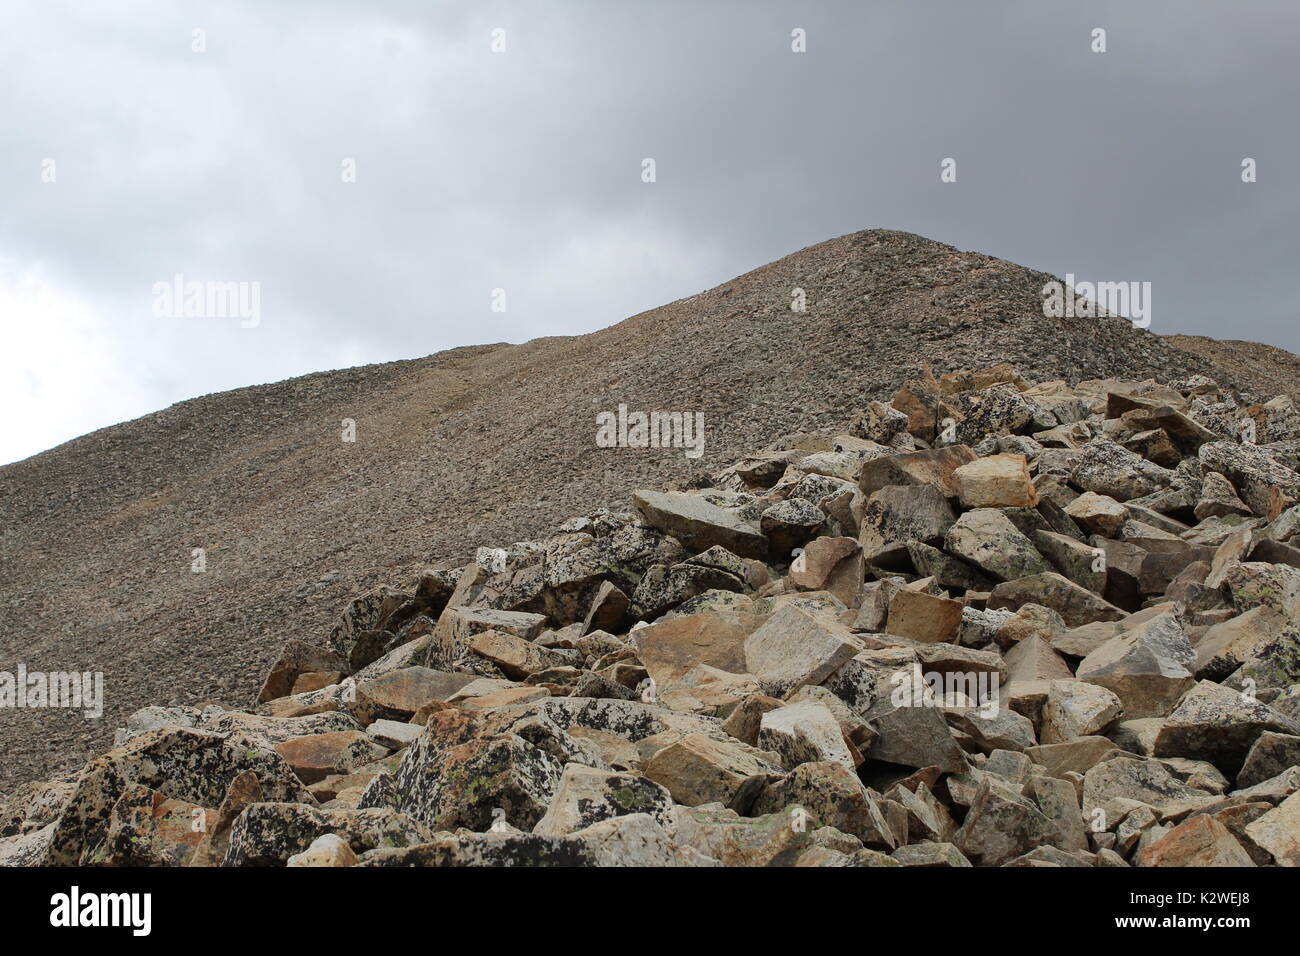 Summit of Mt. Democrat in the Mosquito Range of the Rocky Mountains as seen from the eastern slope trail.  Near Alma and Fairplay, Colorado. - Stock Image